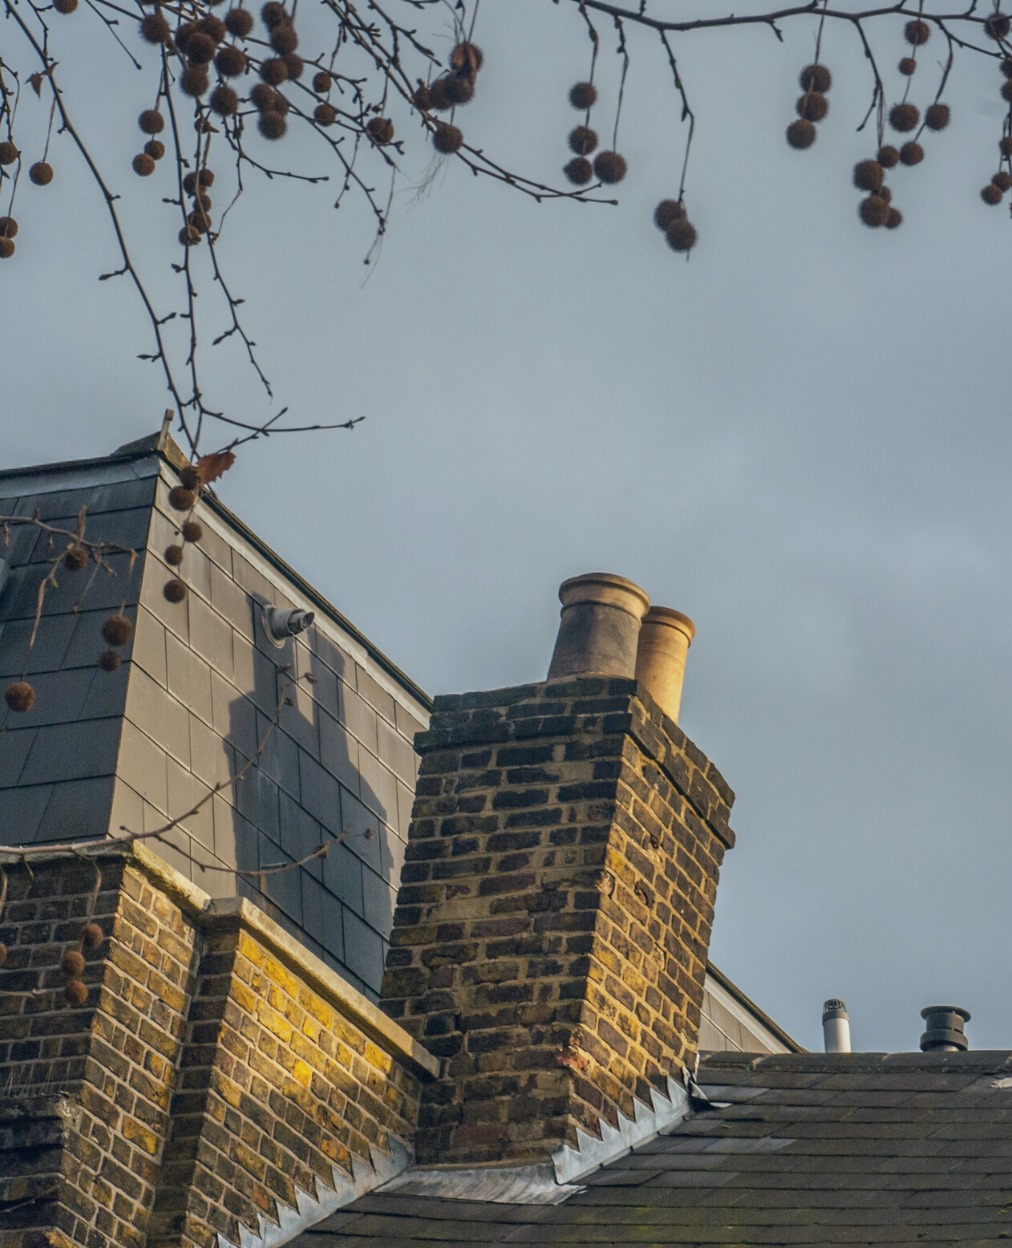 Roofing Inspections & Surveys in London